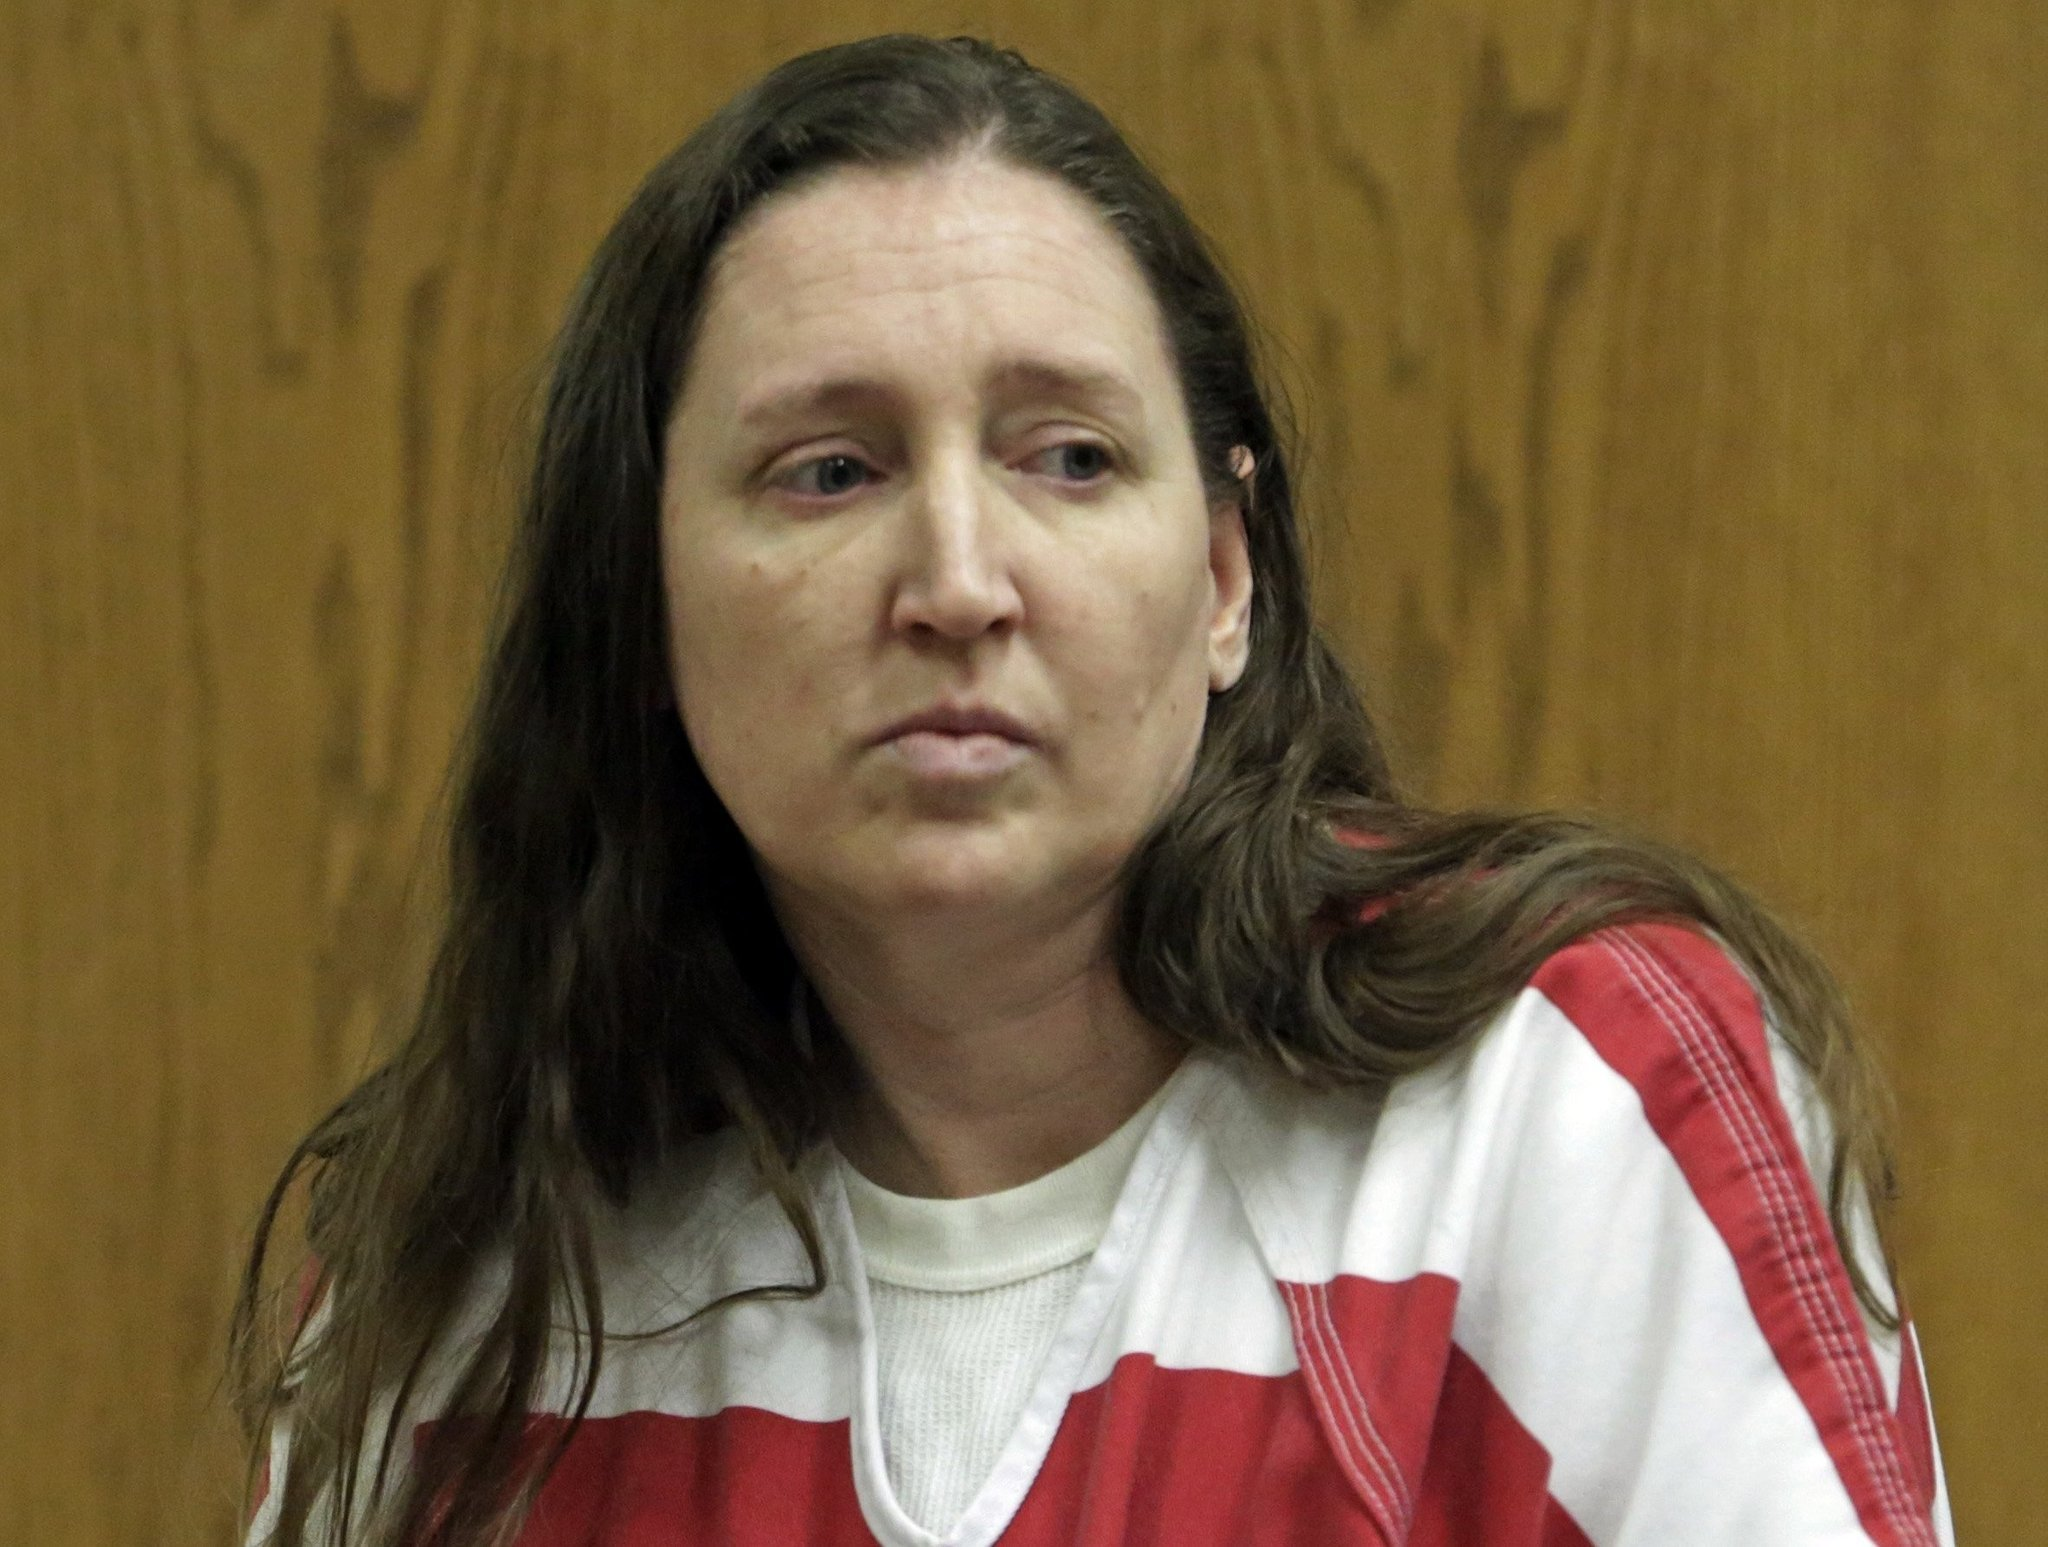 Utah Mother Pleads Guilty To Murdering Six Of Her Babies